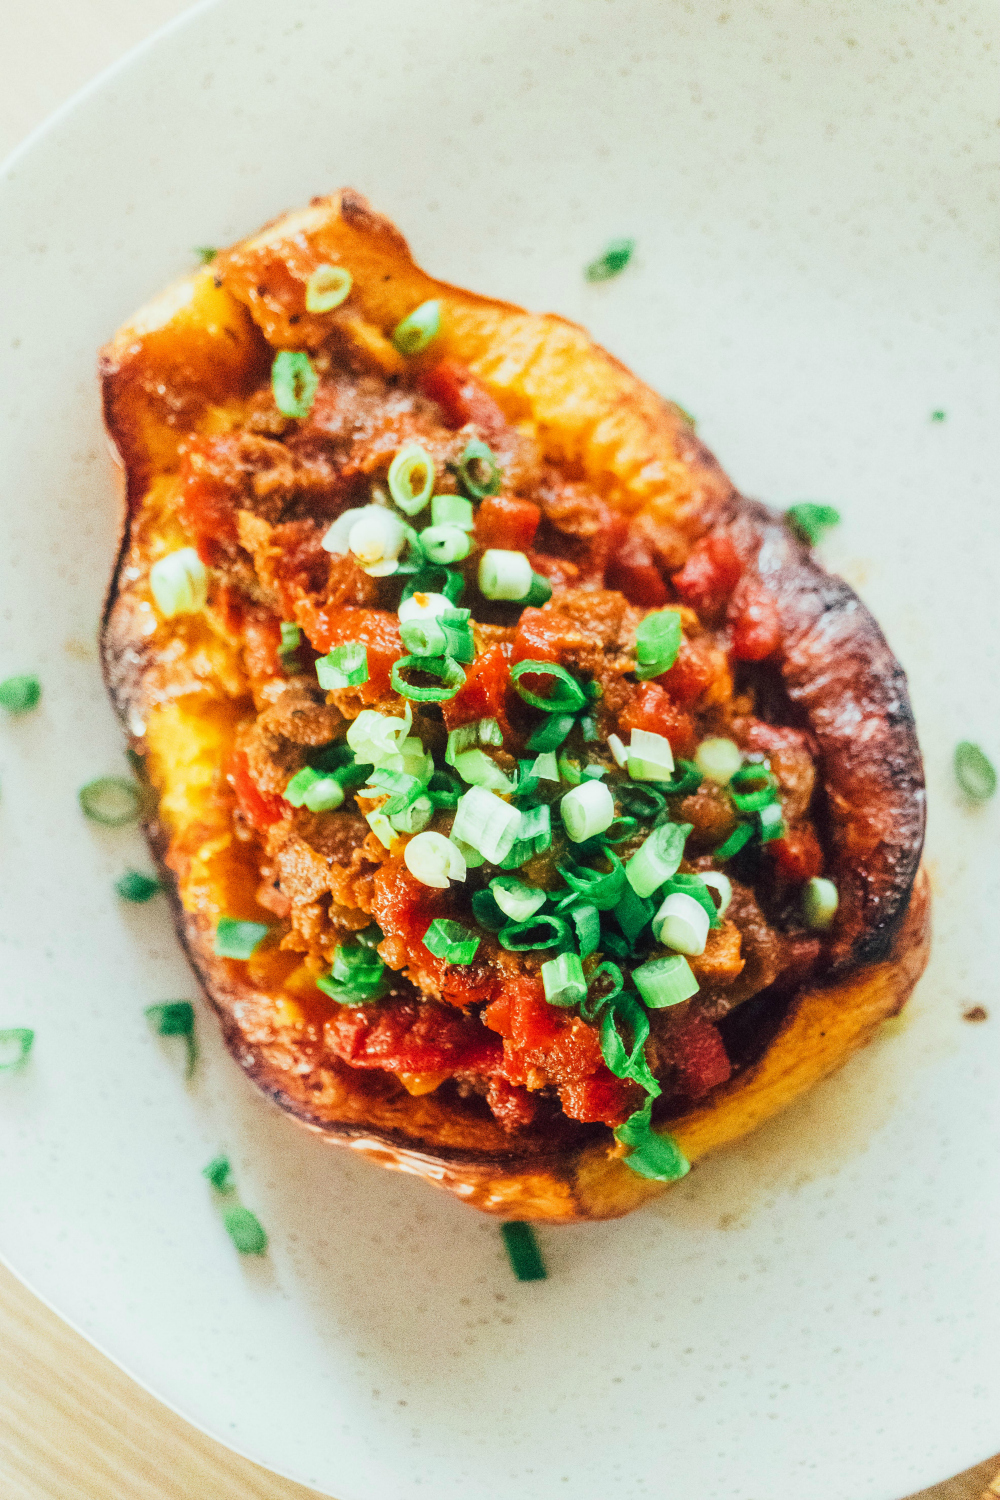 Summer Instant Pot recipes: Instant Pot sloppy joe's | Bare Root Girl